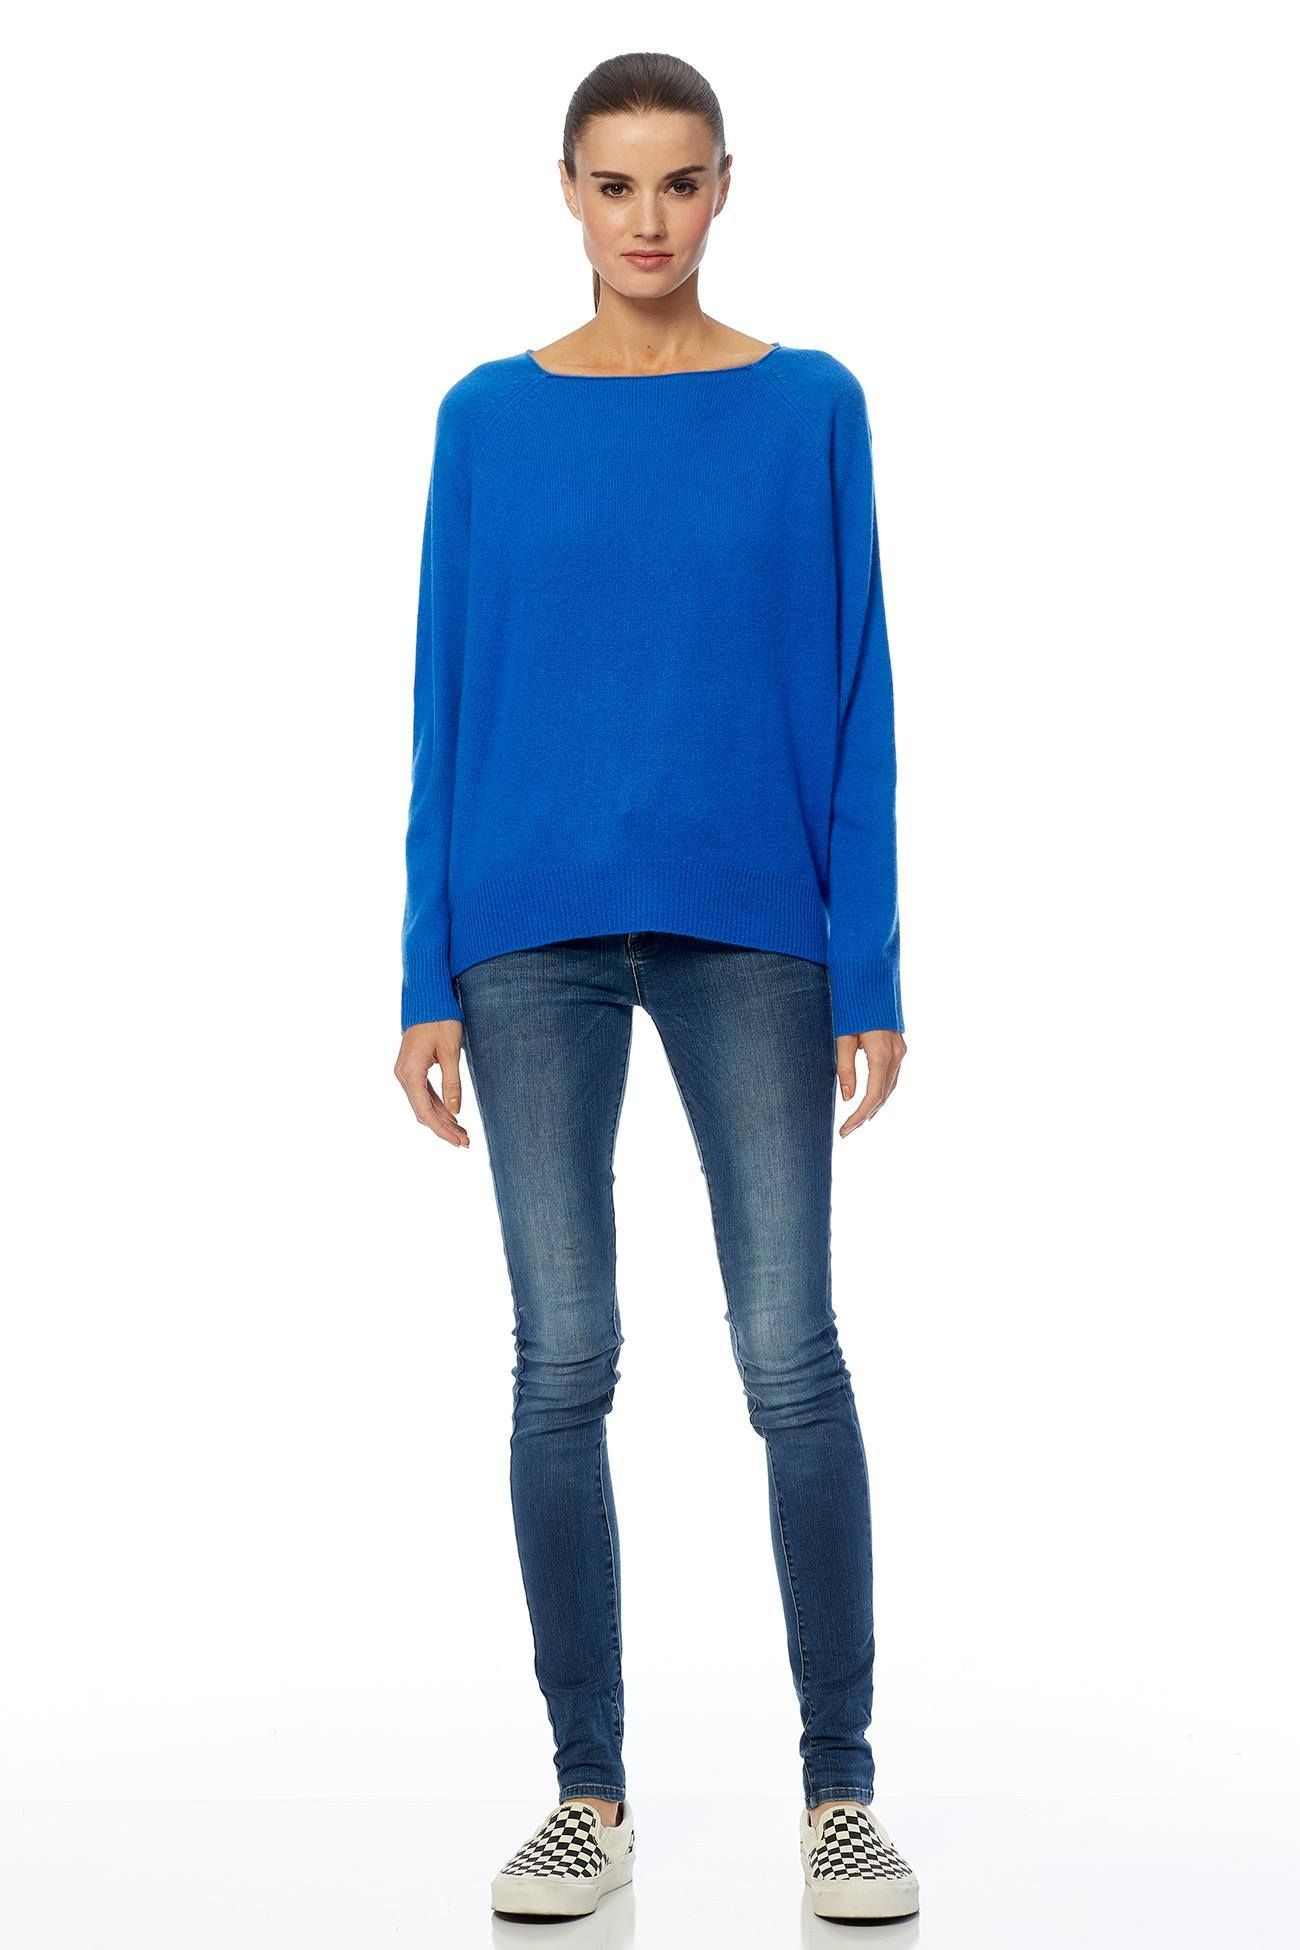 Jolene Boat Neck Sweater - Electric Blue